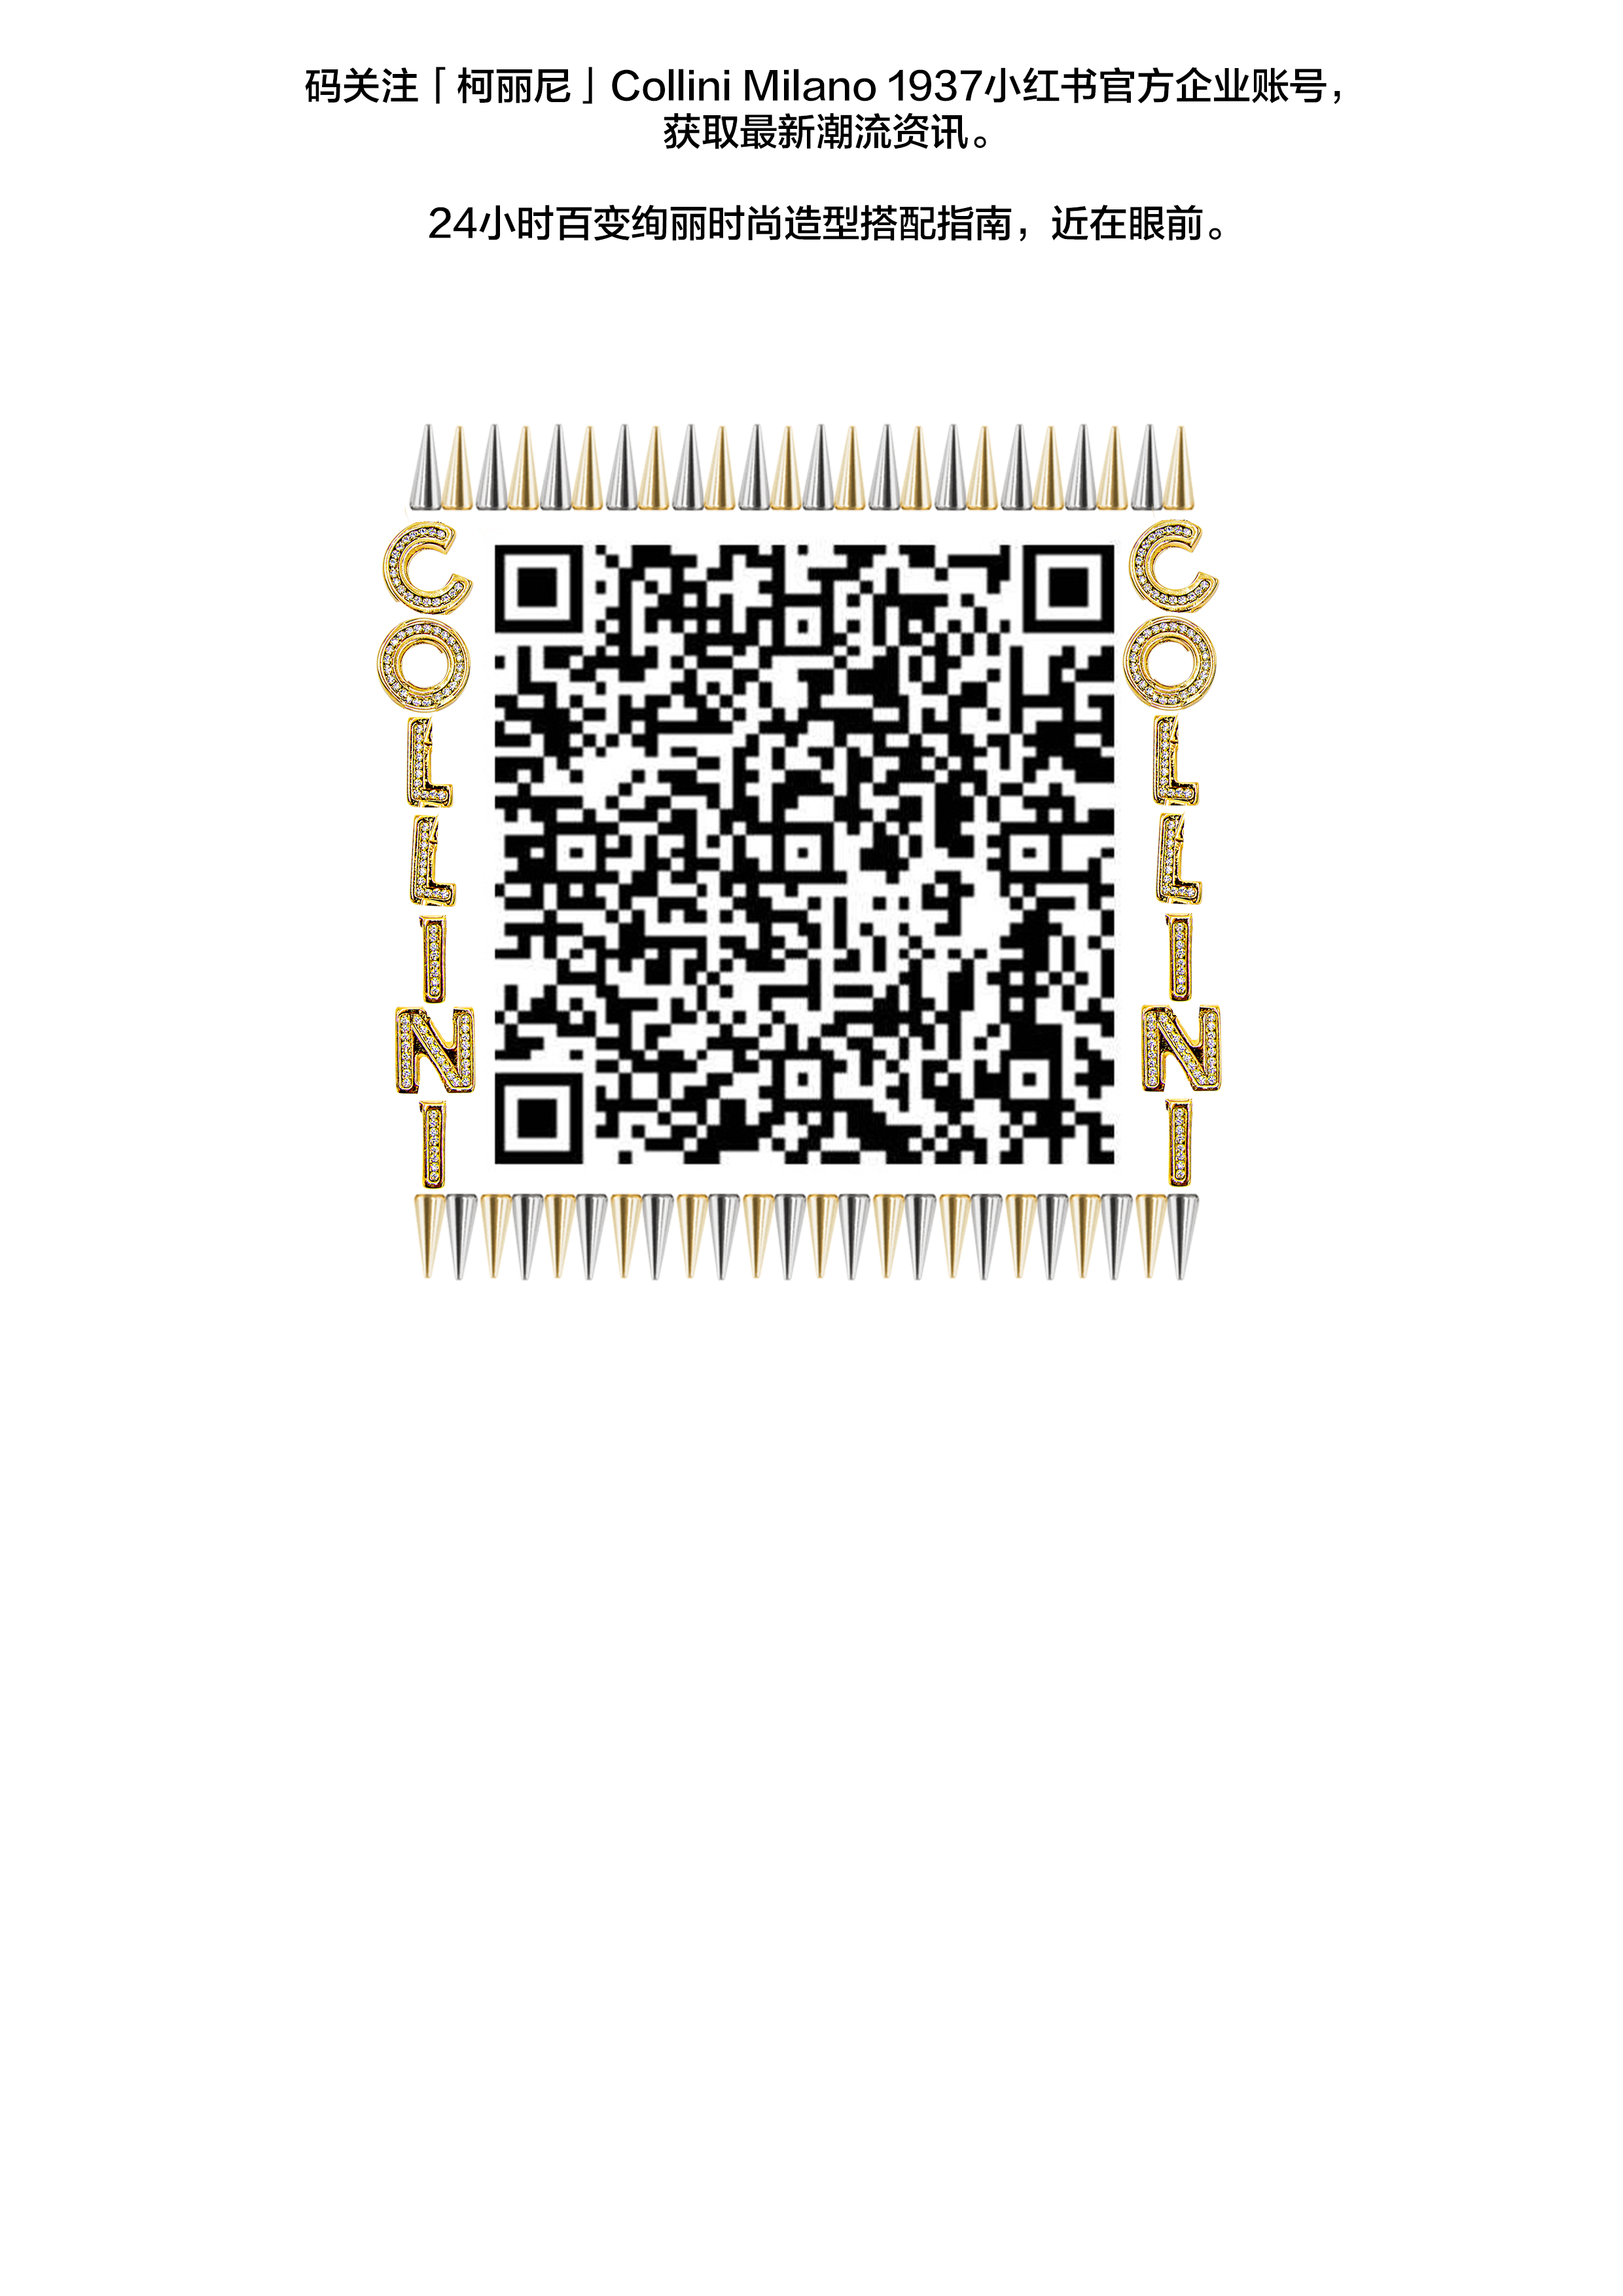 QR_THERED_COLLINI